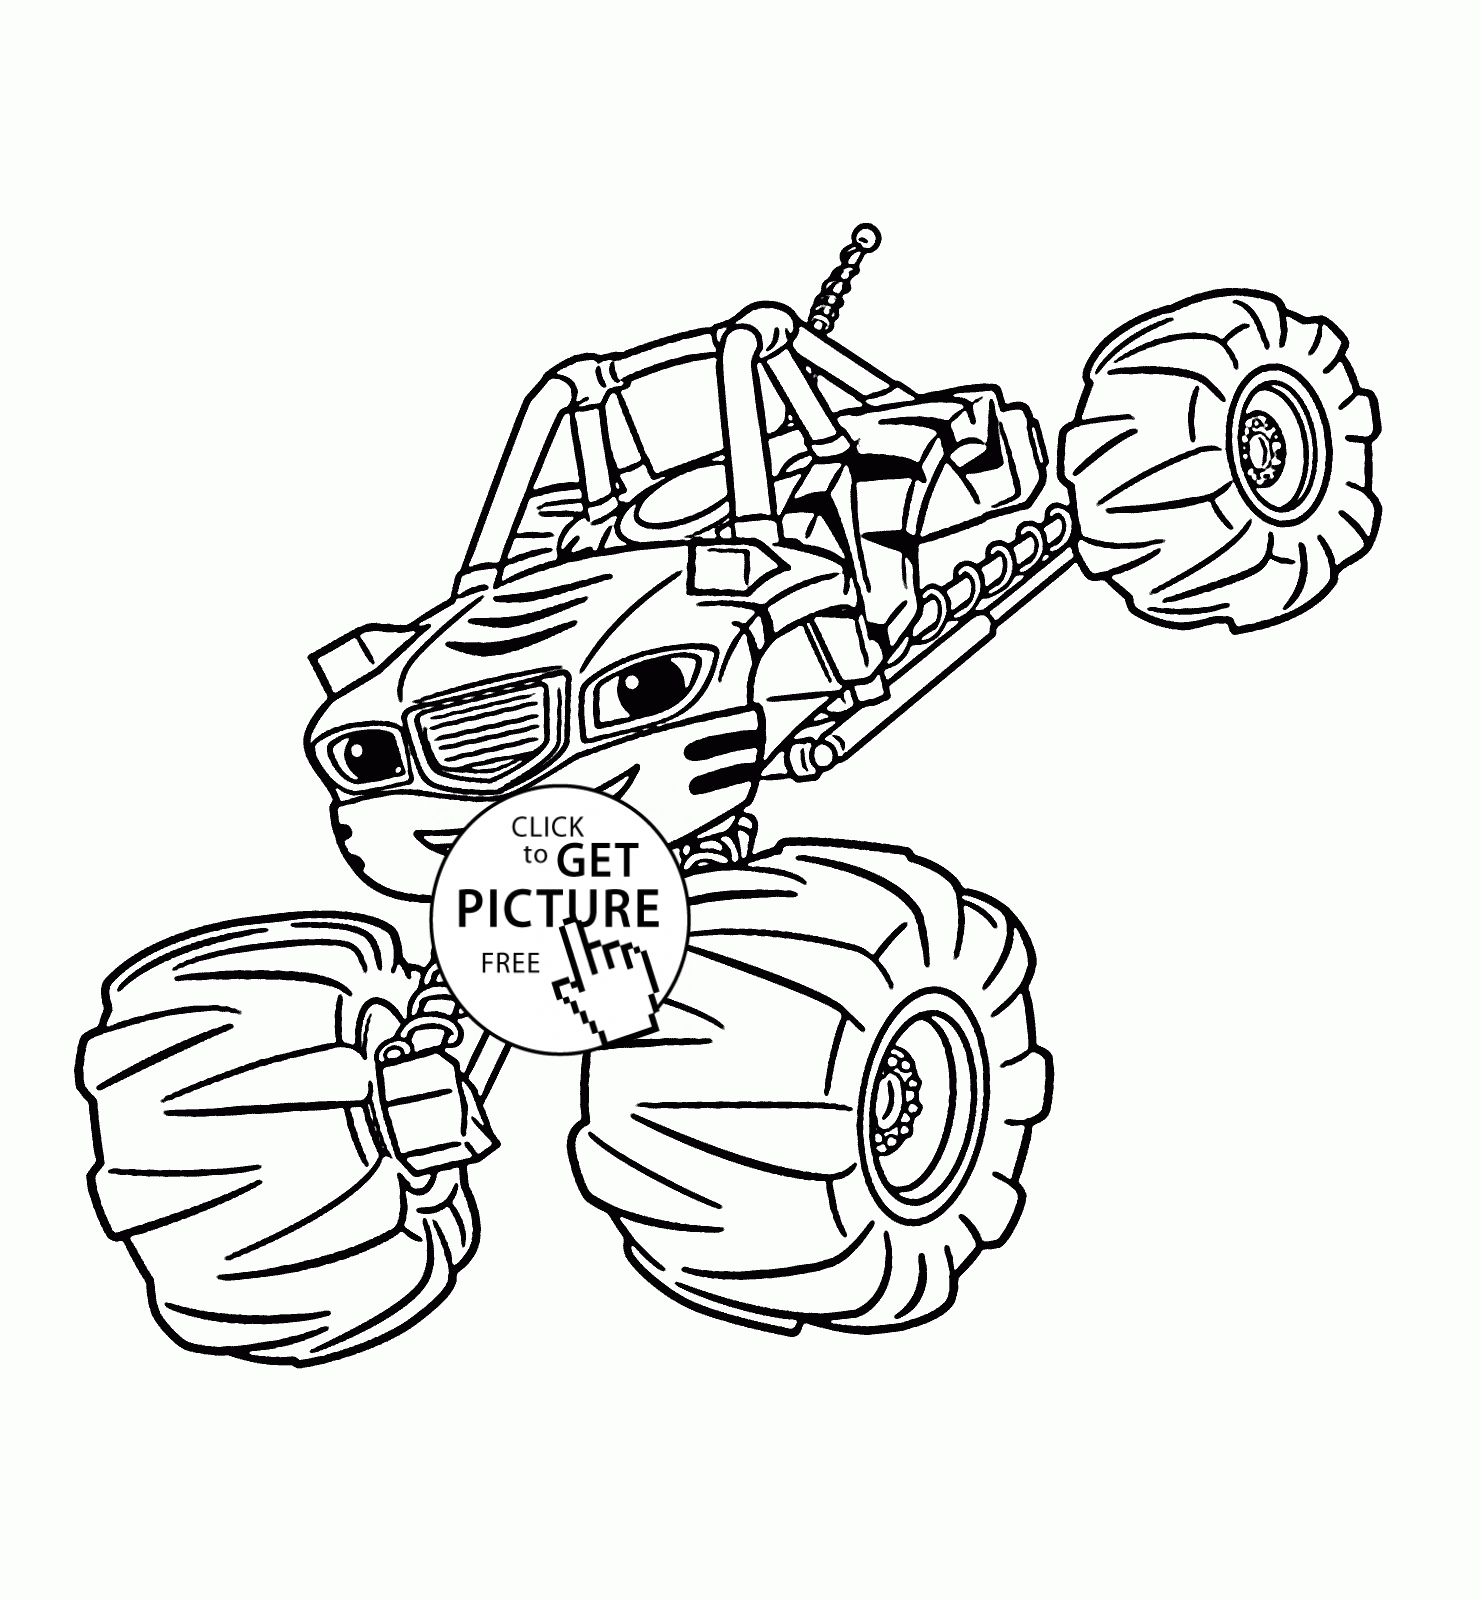 Coloring Pages Blaze and the Monster Machines  Download 20t - Save it to your computer